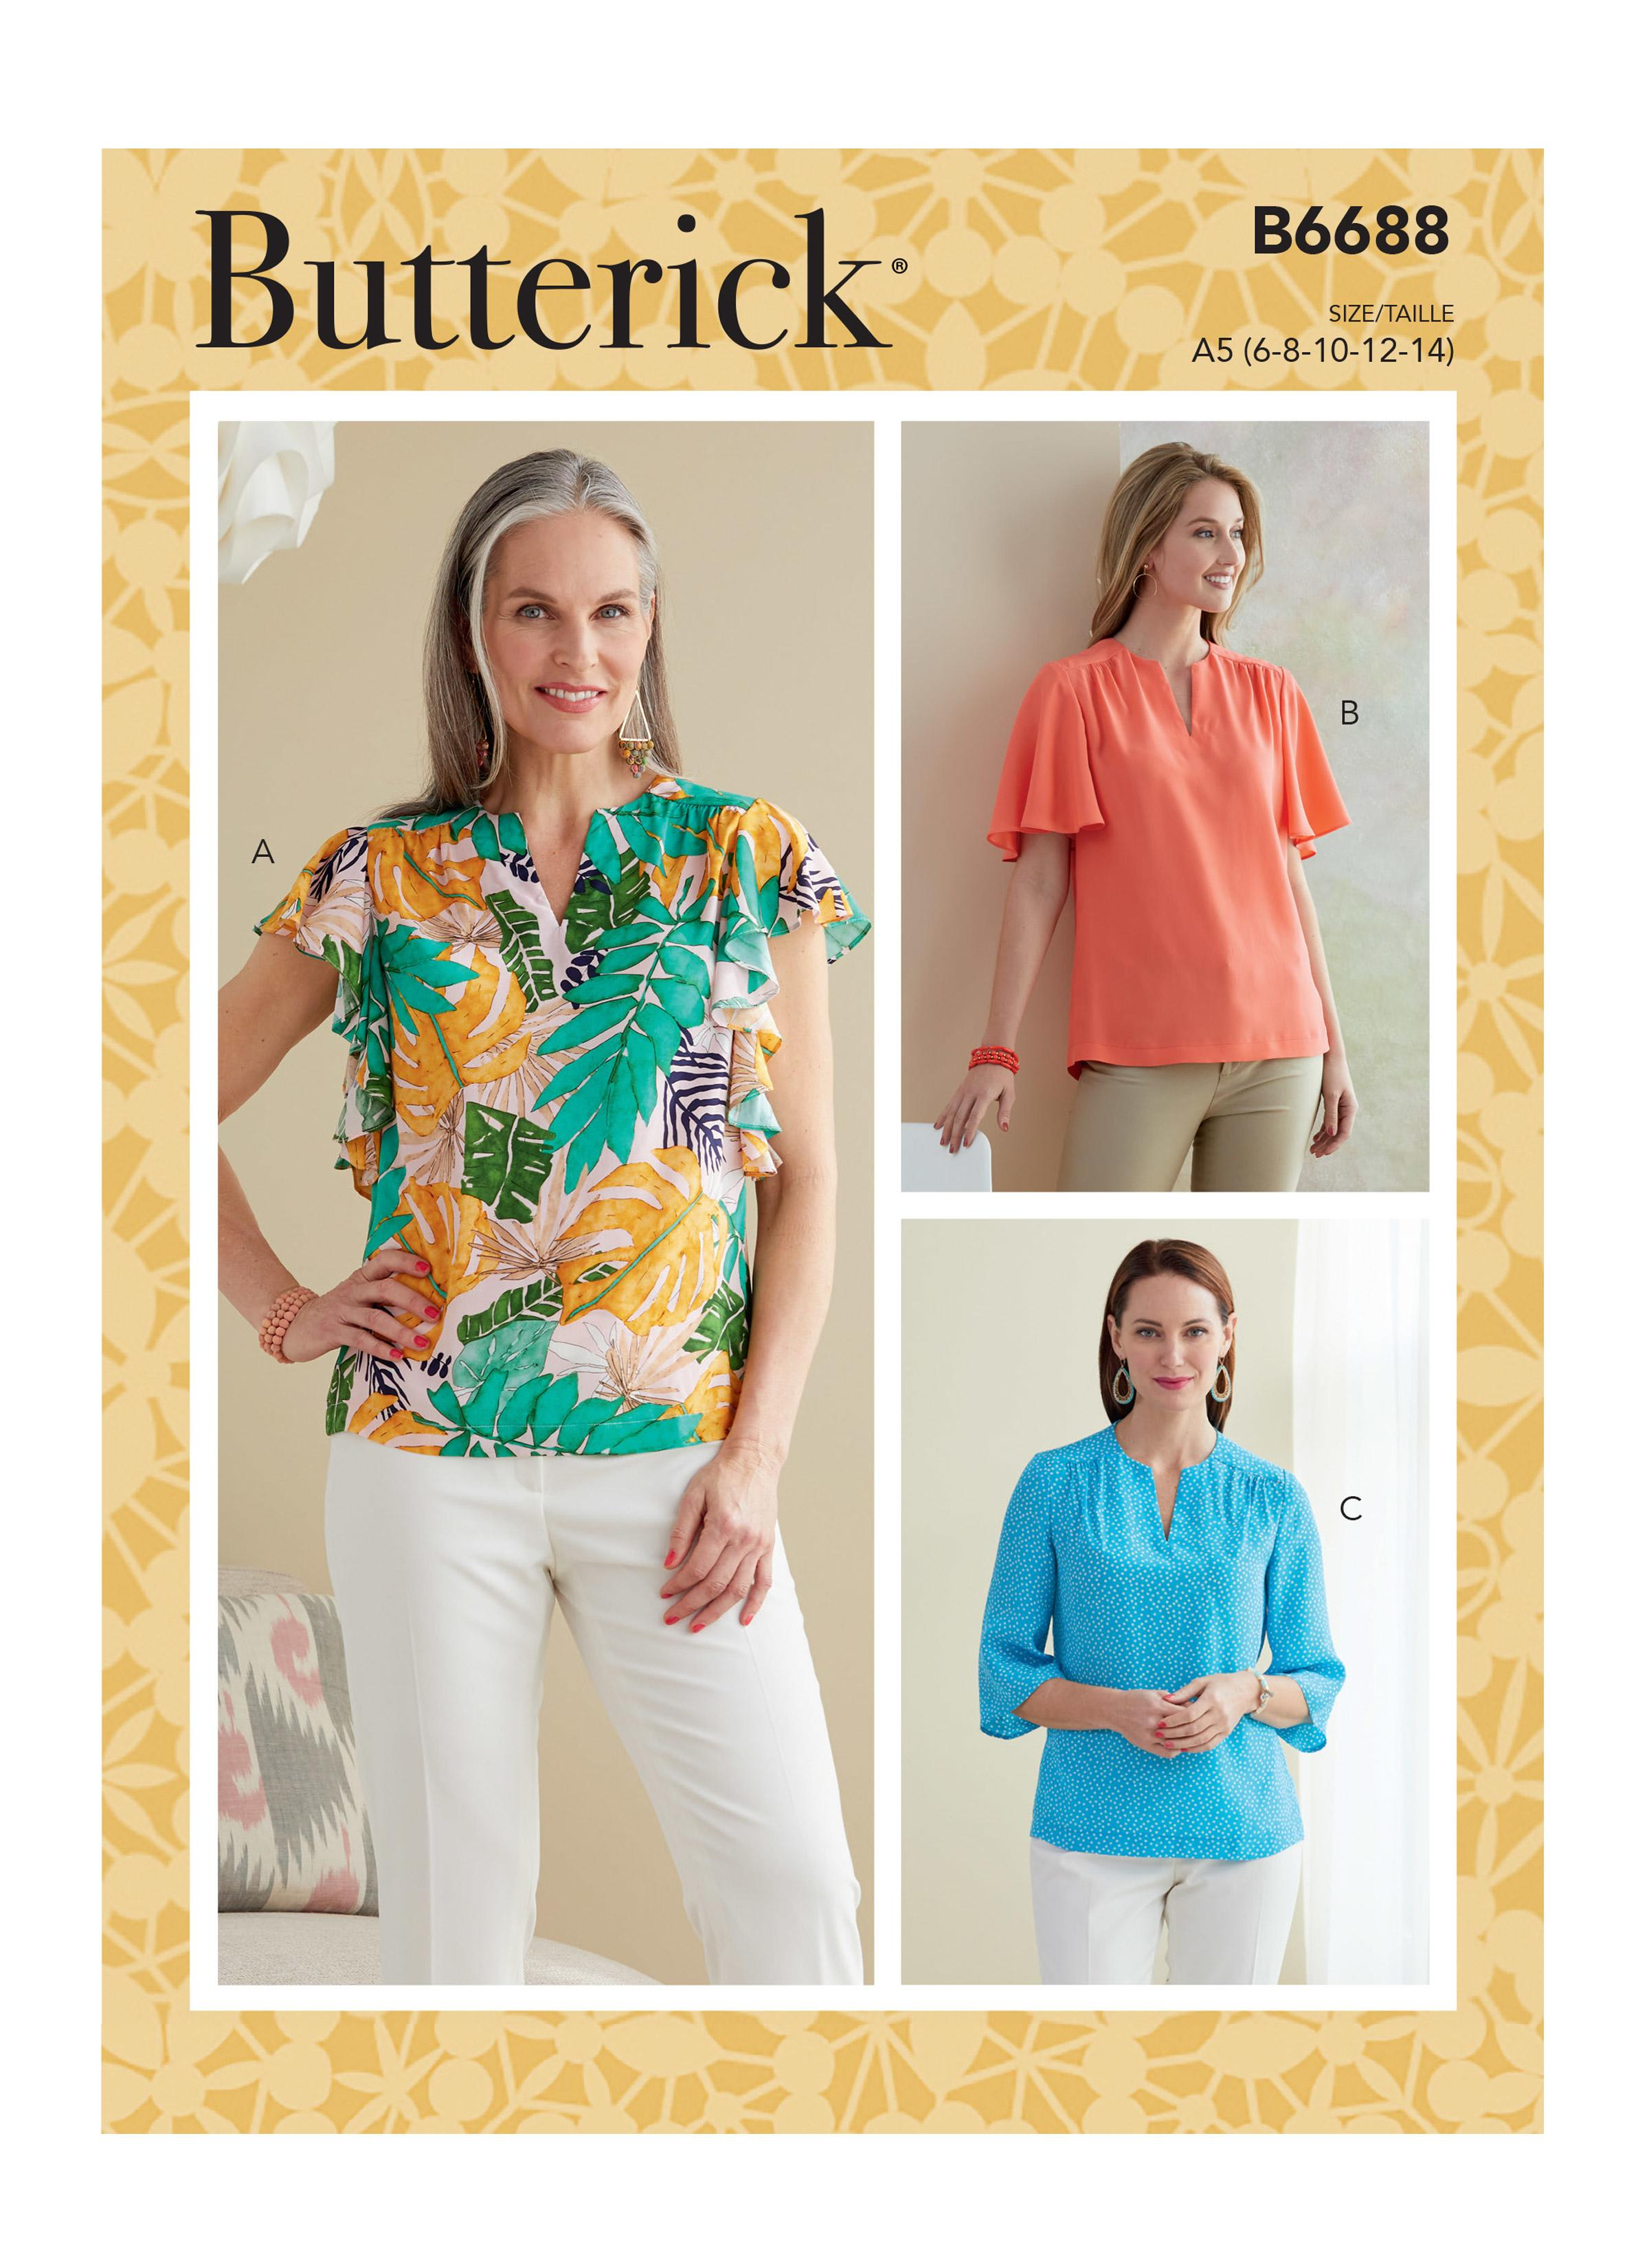 Butterick B6688 Misses' Top